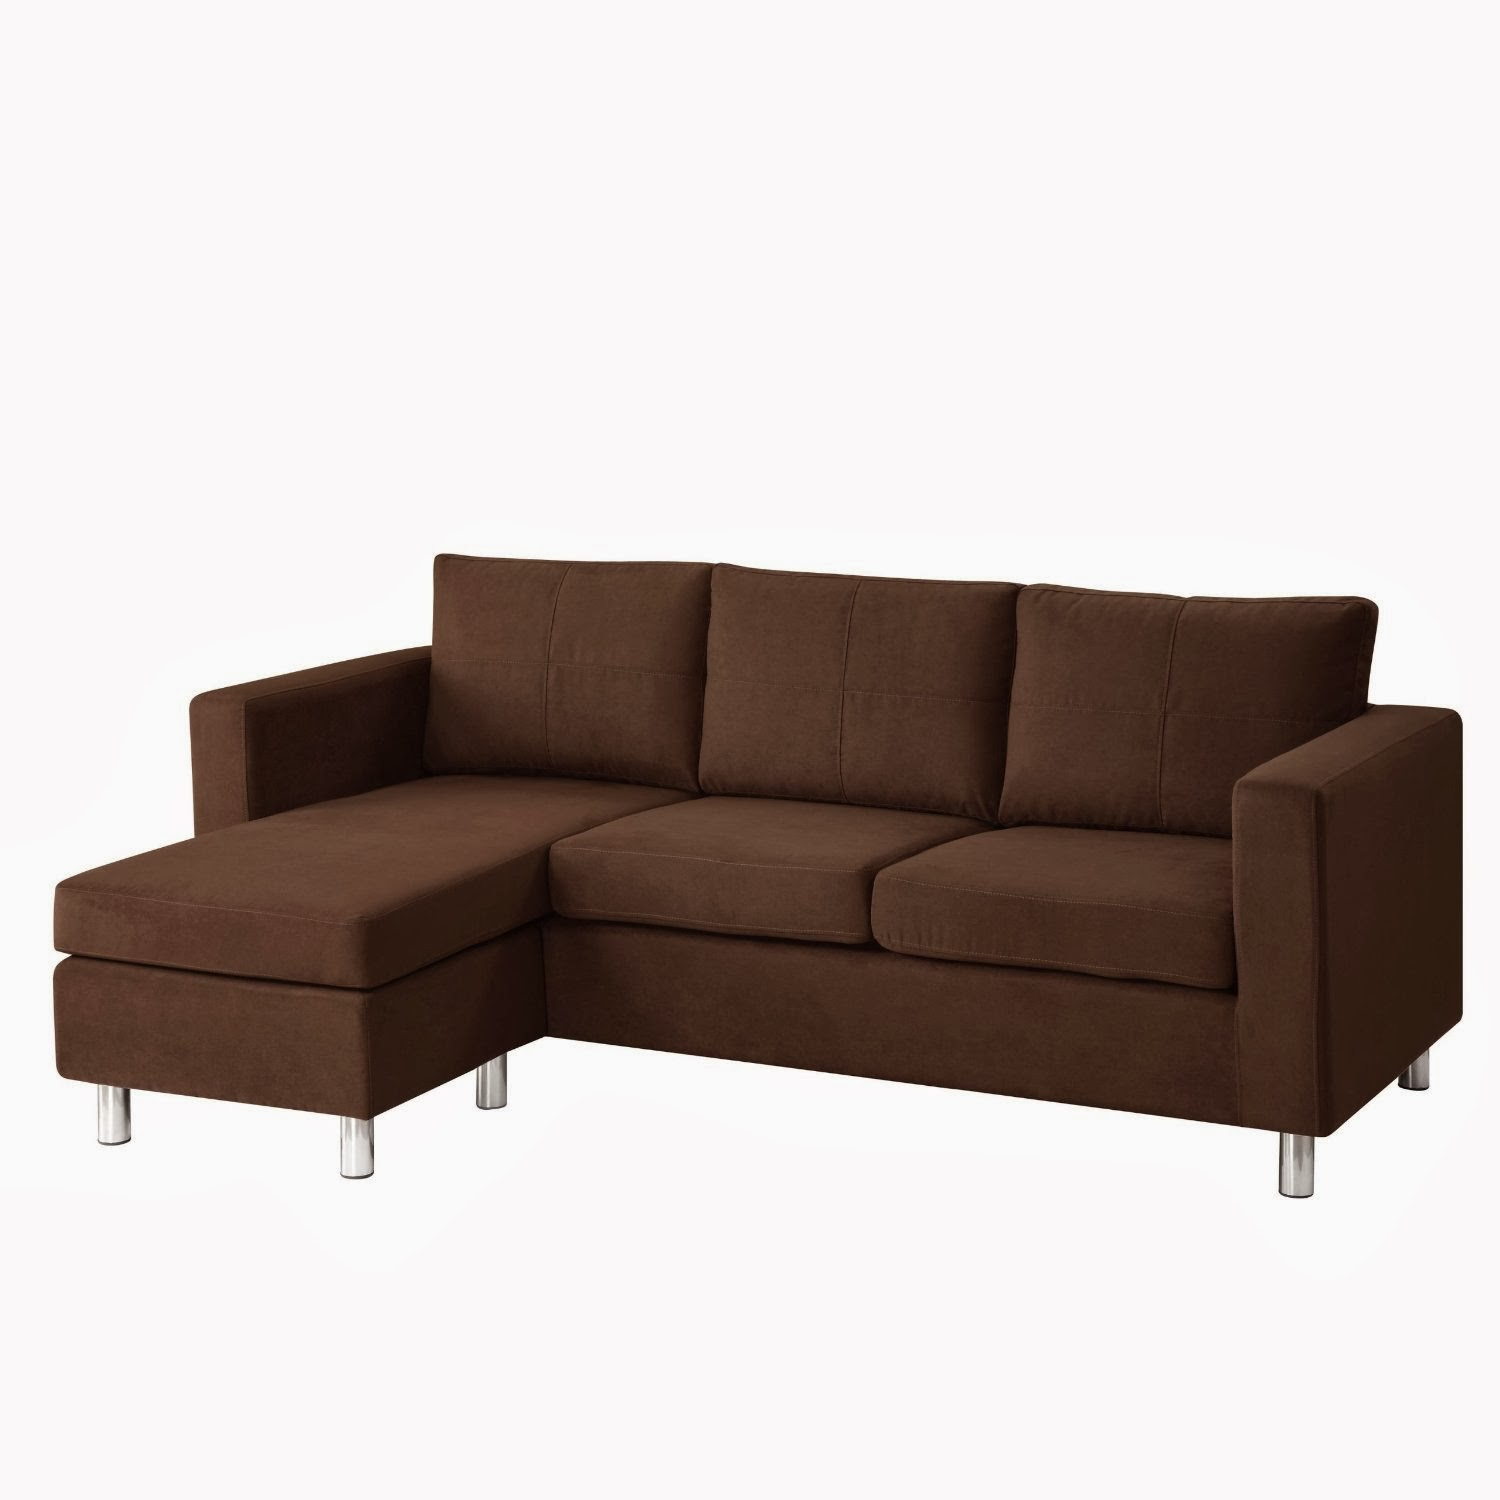 Small sectional sofas reviews small sectional sofa with for Small sectional sofa